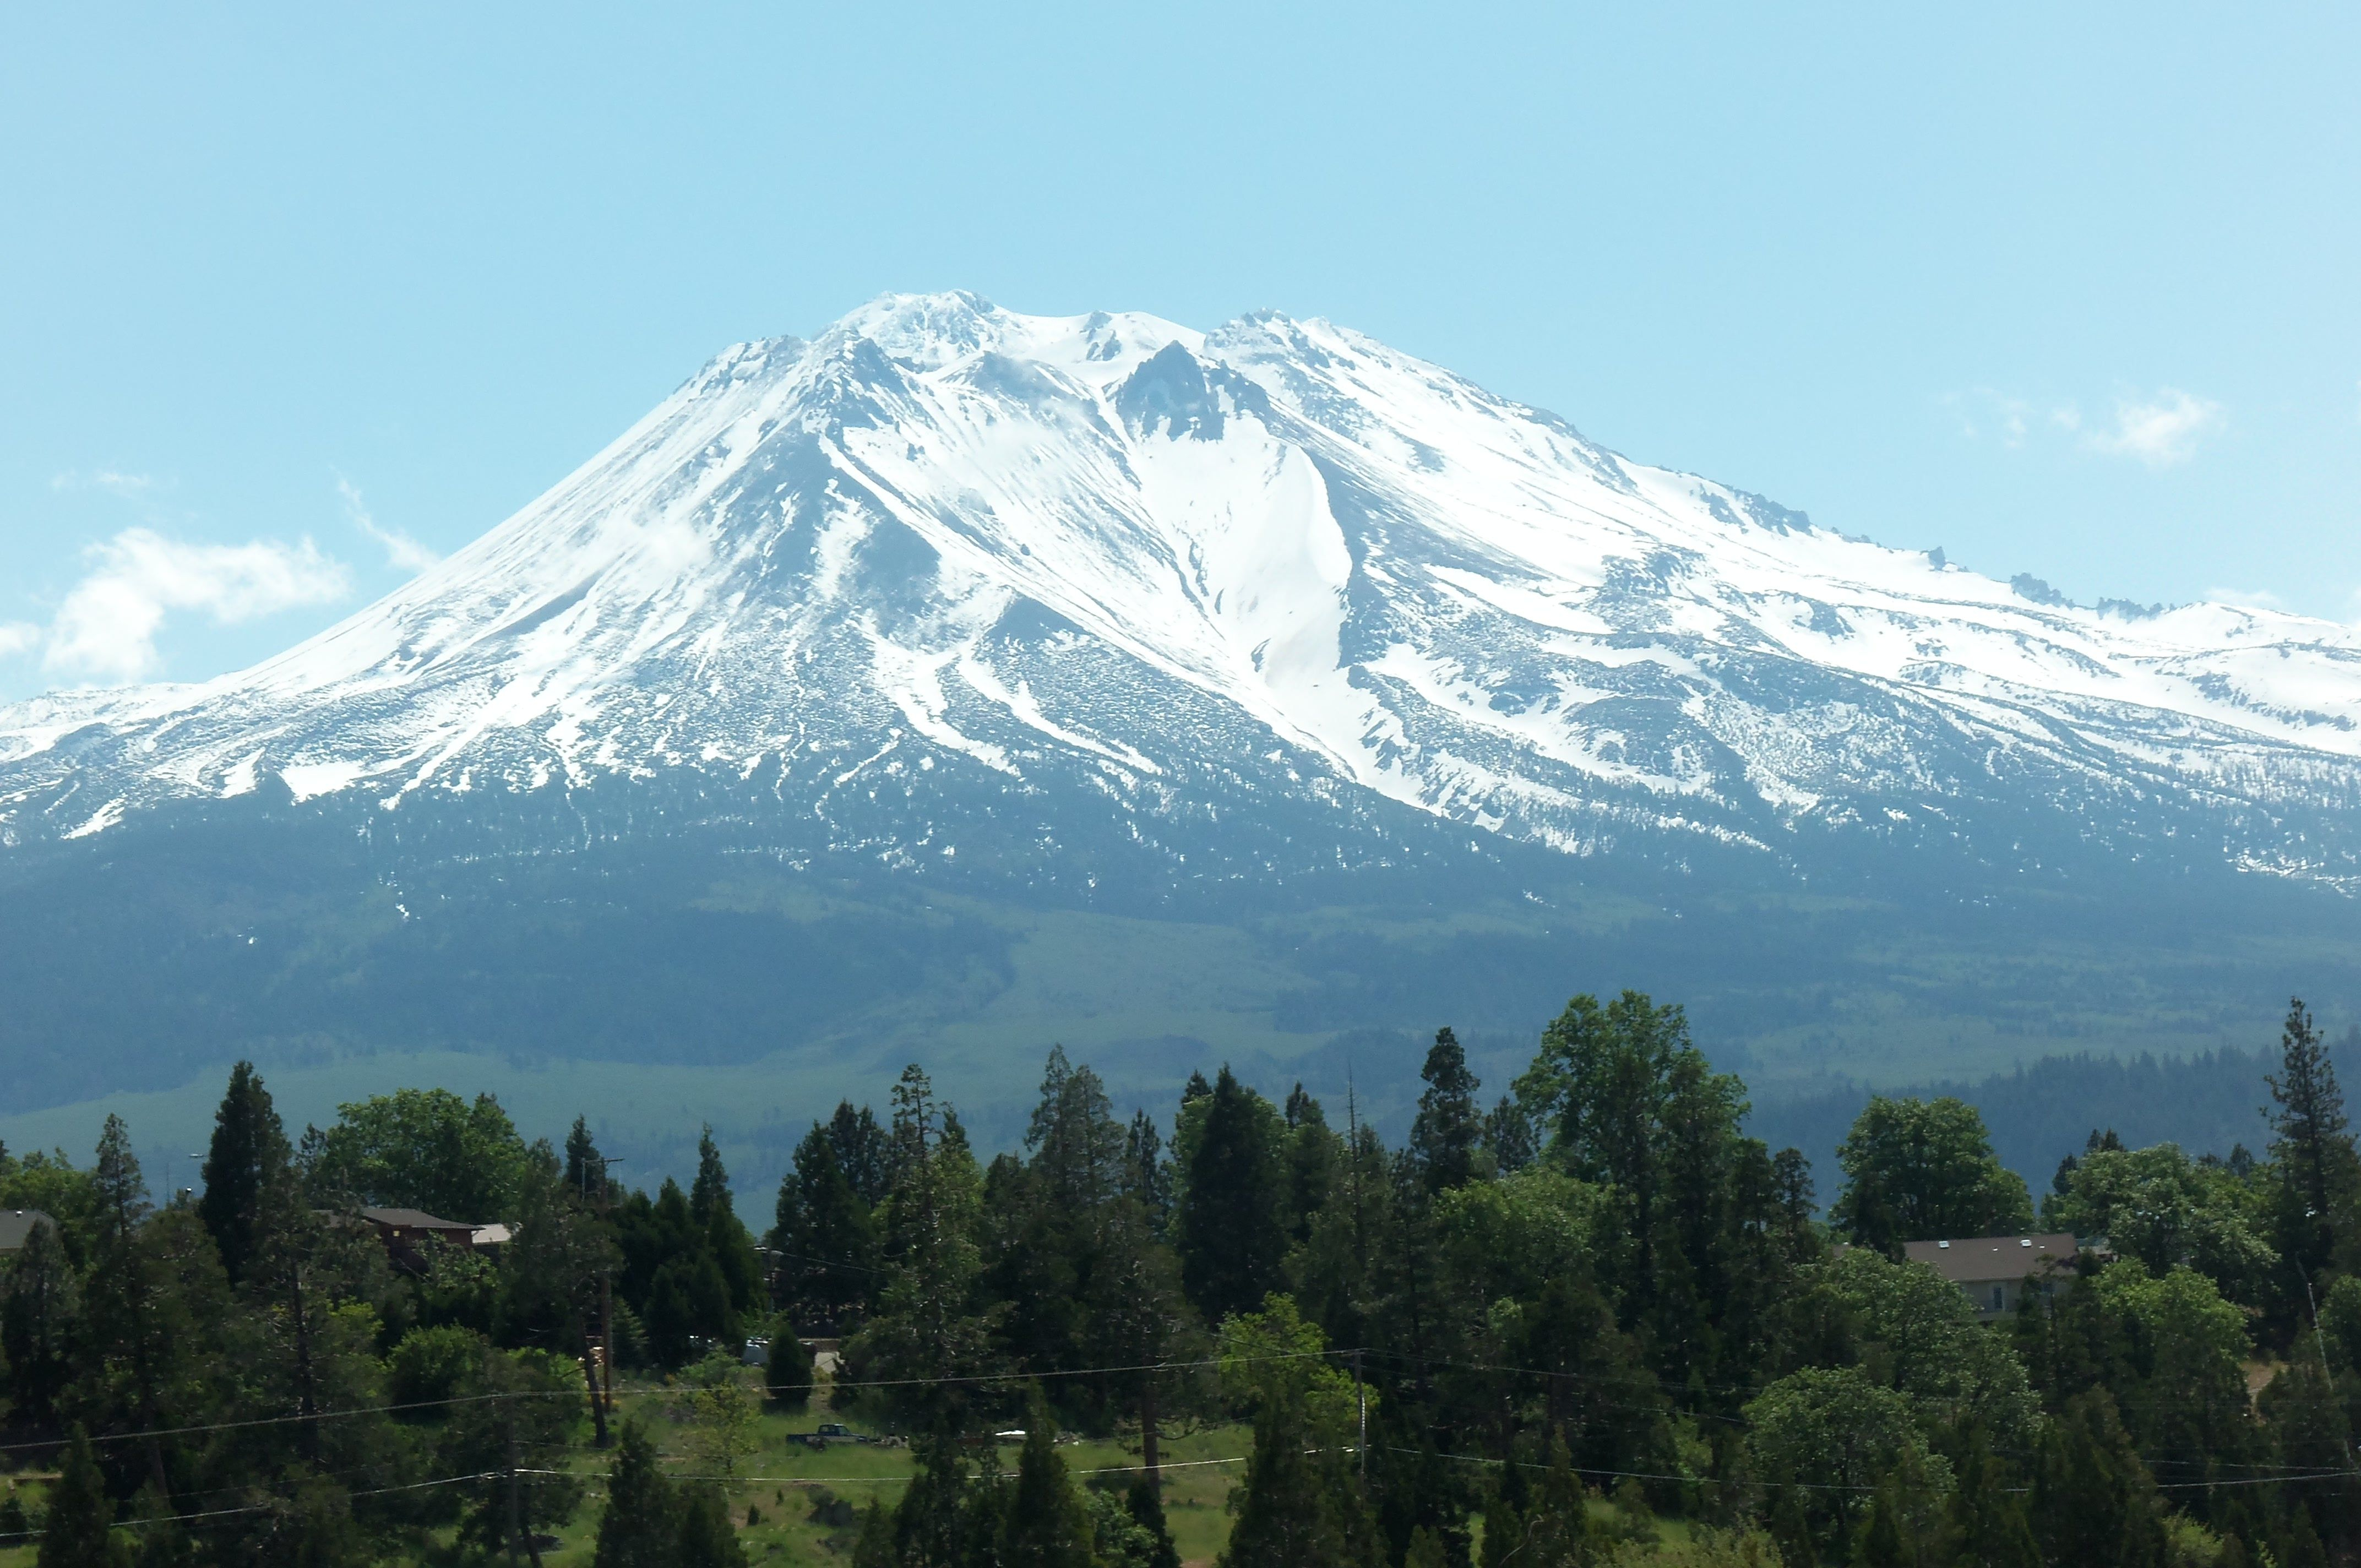 Weed, CA : View of Mt. Shasta from Weed, CA photo, picture, image (California) at city-data.com